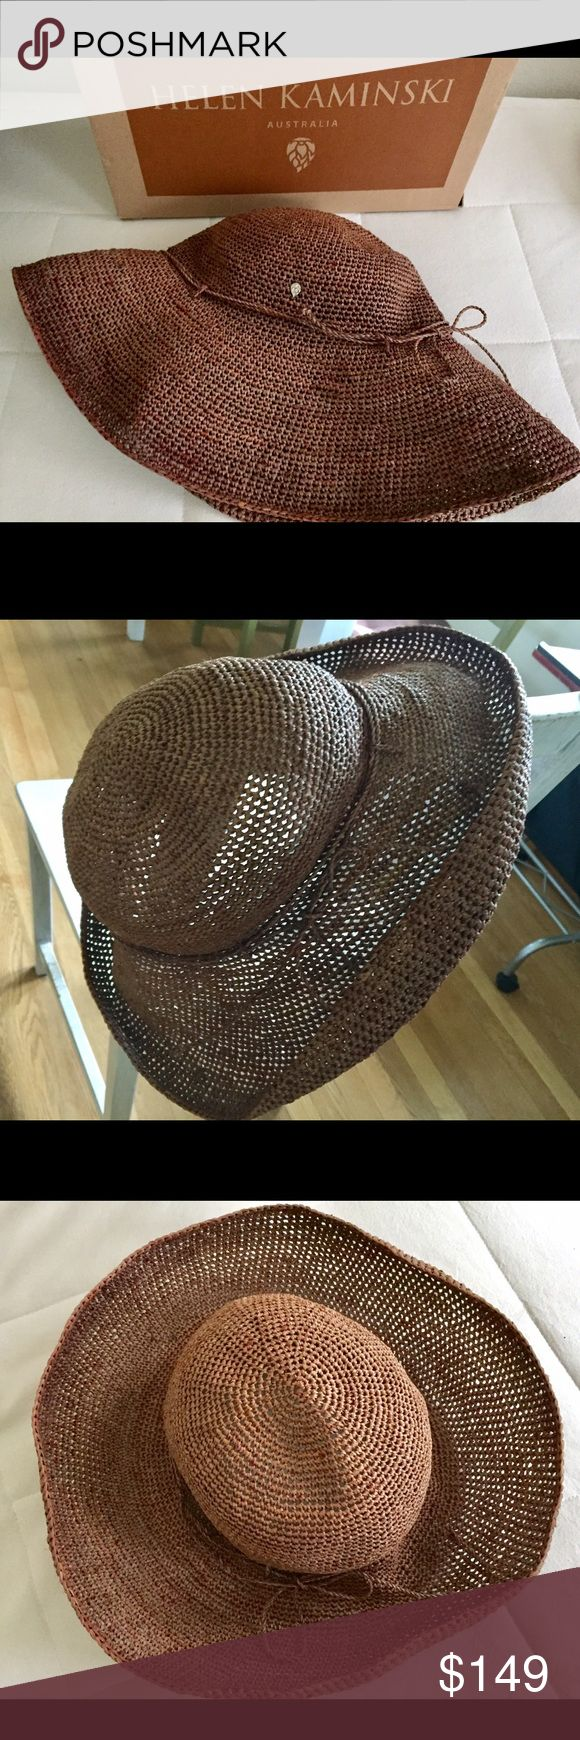 """Helen Kaminski Raffia Provence Hat 12"""" Bark Excellent pre-owned Condition. No inner band attached. Helen Kaminski Accessories Hats"""